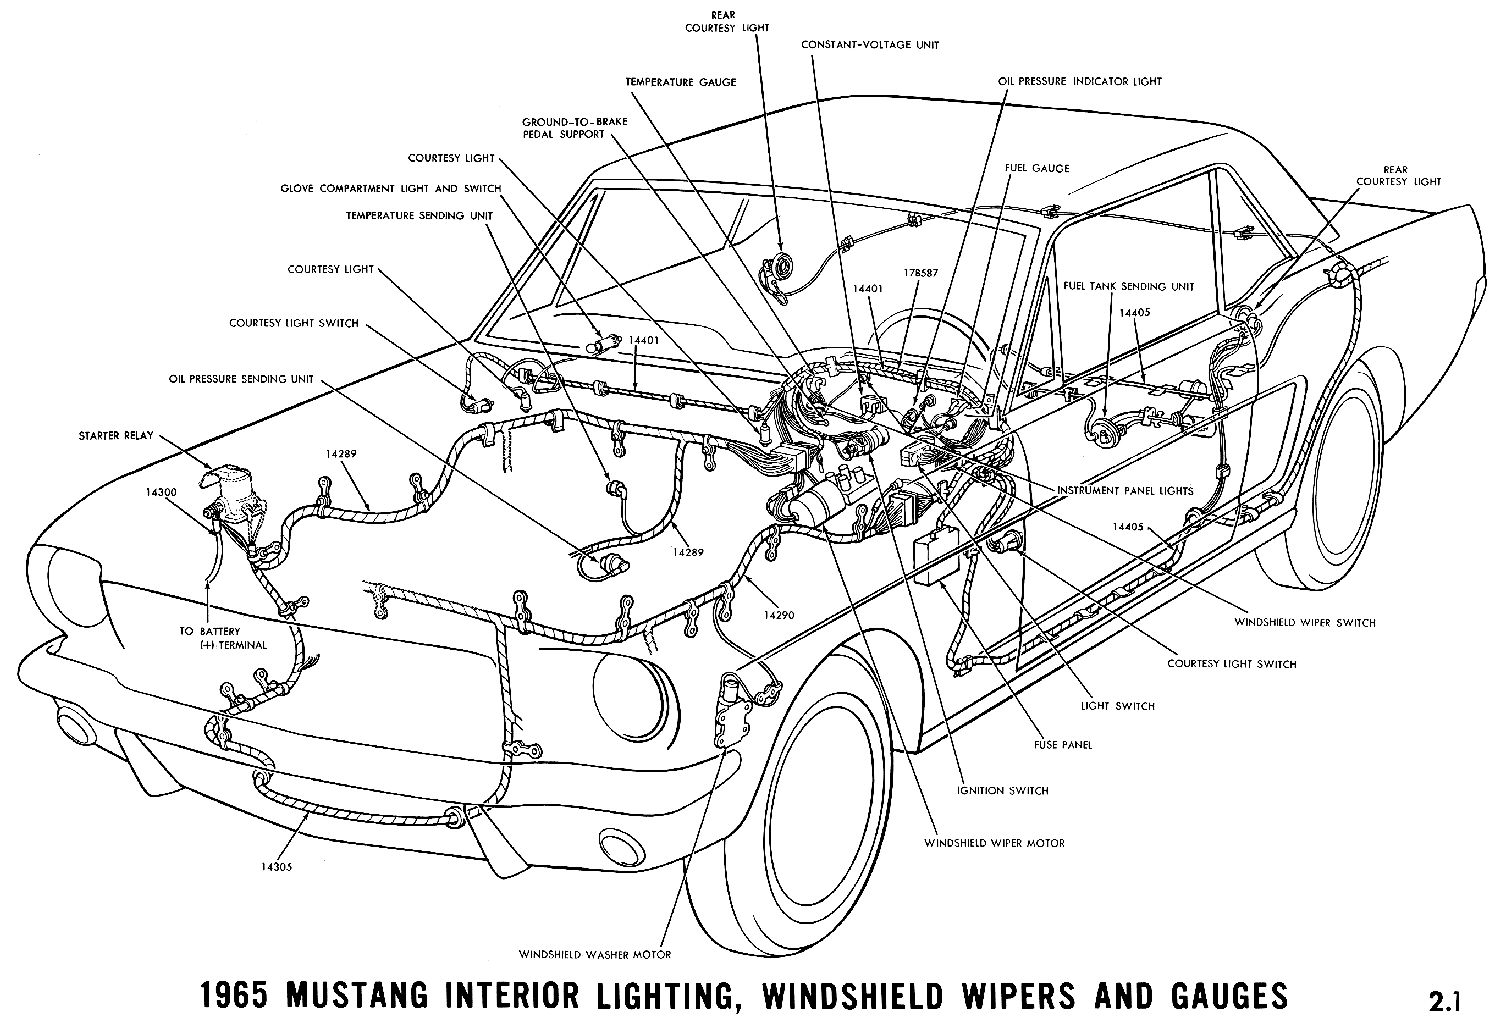 1965 mustang wiring diagrams average joe restoration rh averagejoerestoration com 1965 Mustang Electrical Diagram 1965 Mustang Radiator